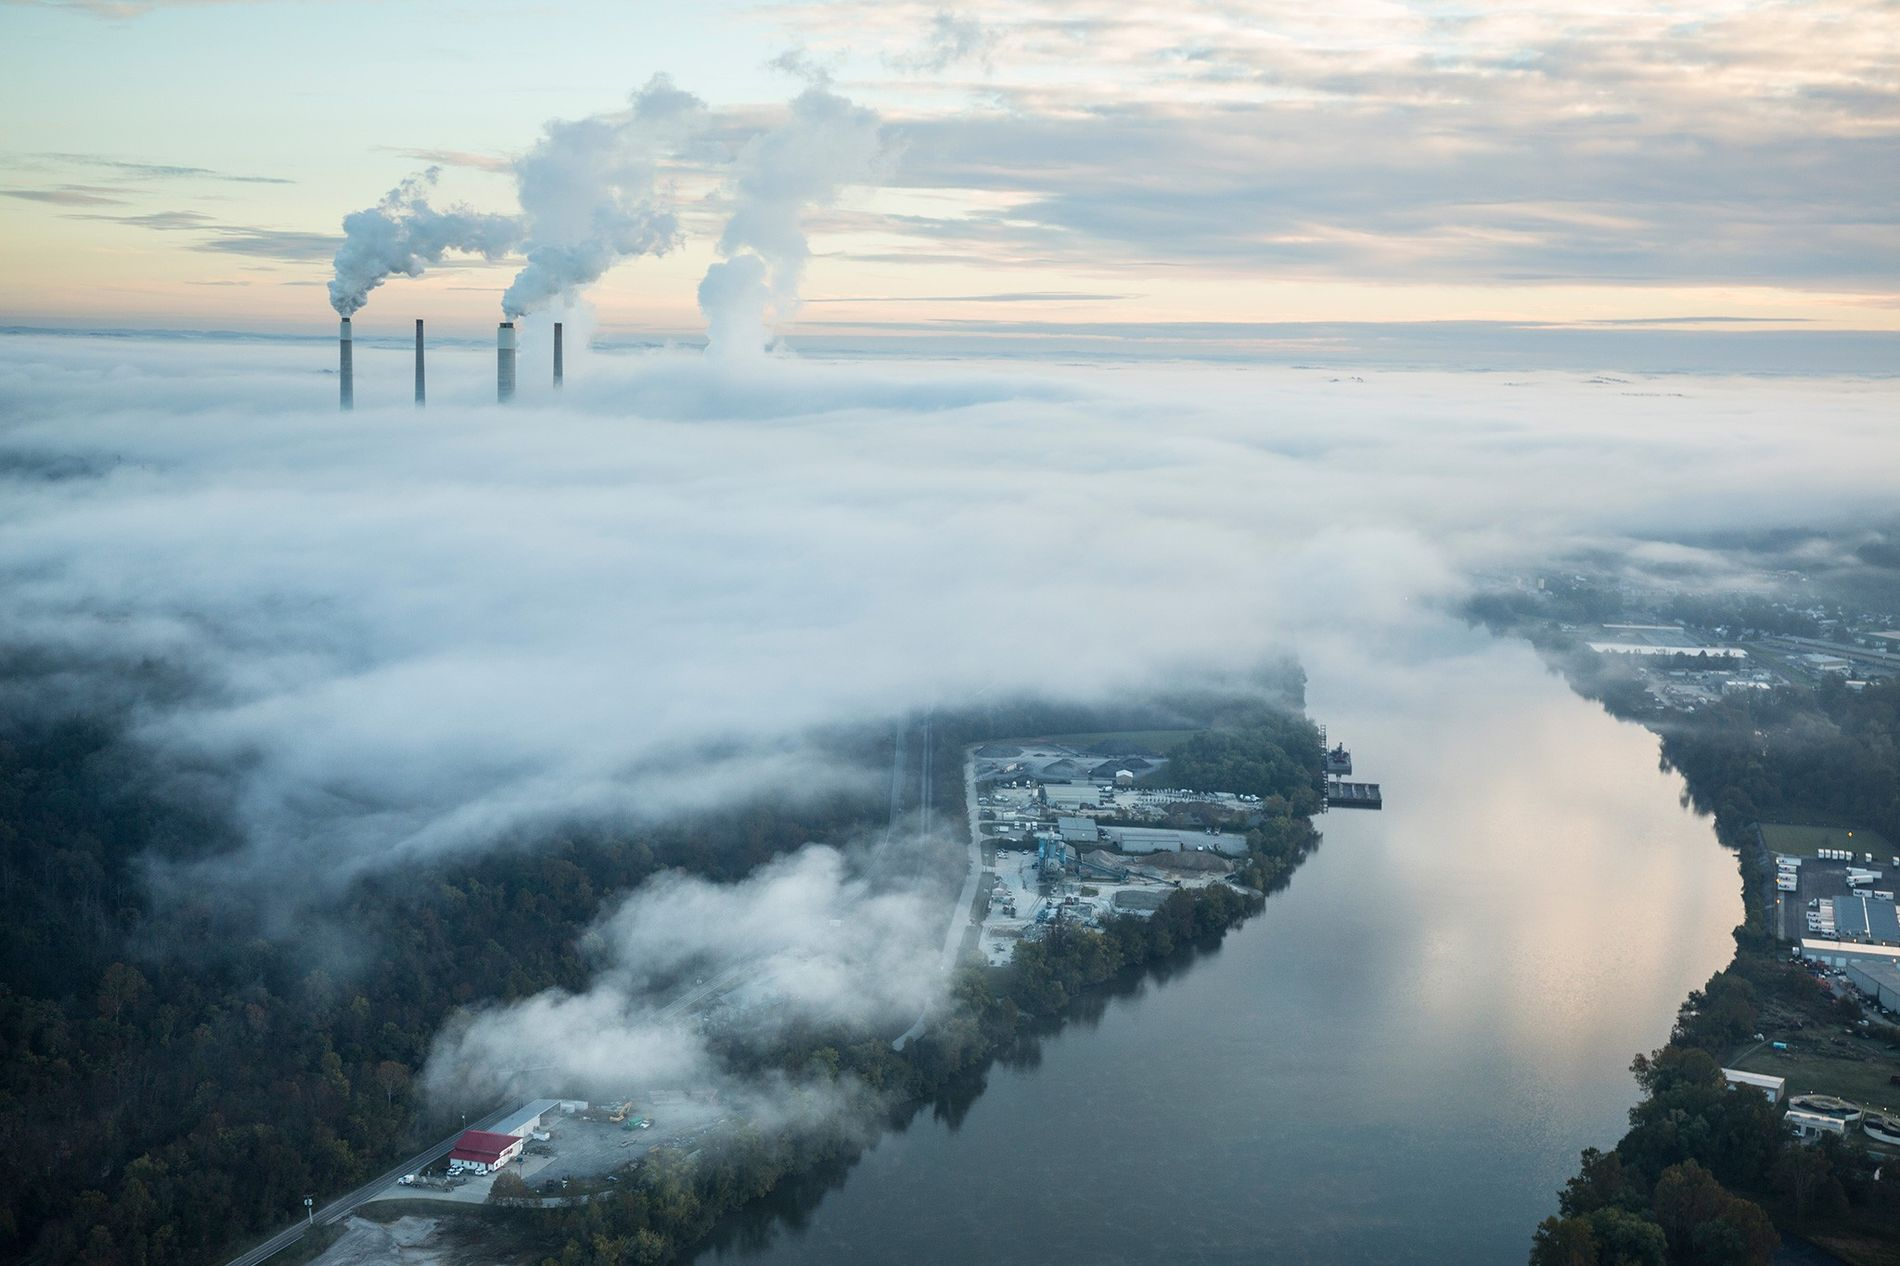 Steam and smoke rise from the cooling towers and chimneys of a power plant. Artificial intelligence ...